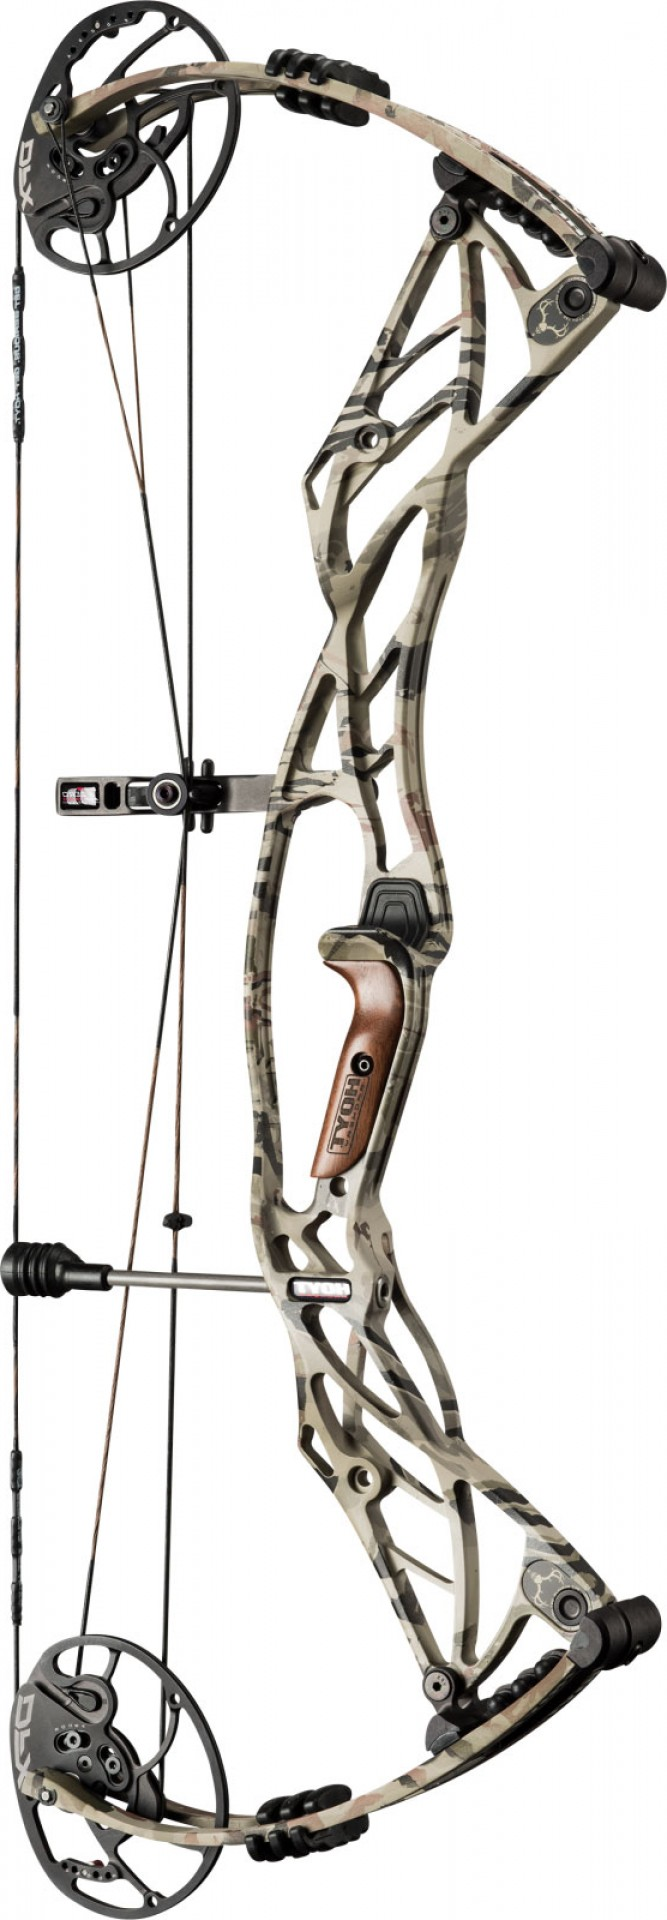 Hoyt Vector Turbo Tuning: Bow Review Field Testing The Hoyt Defiant Turbo